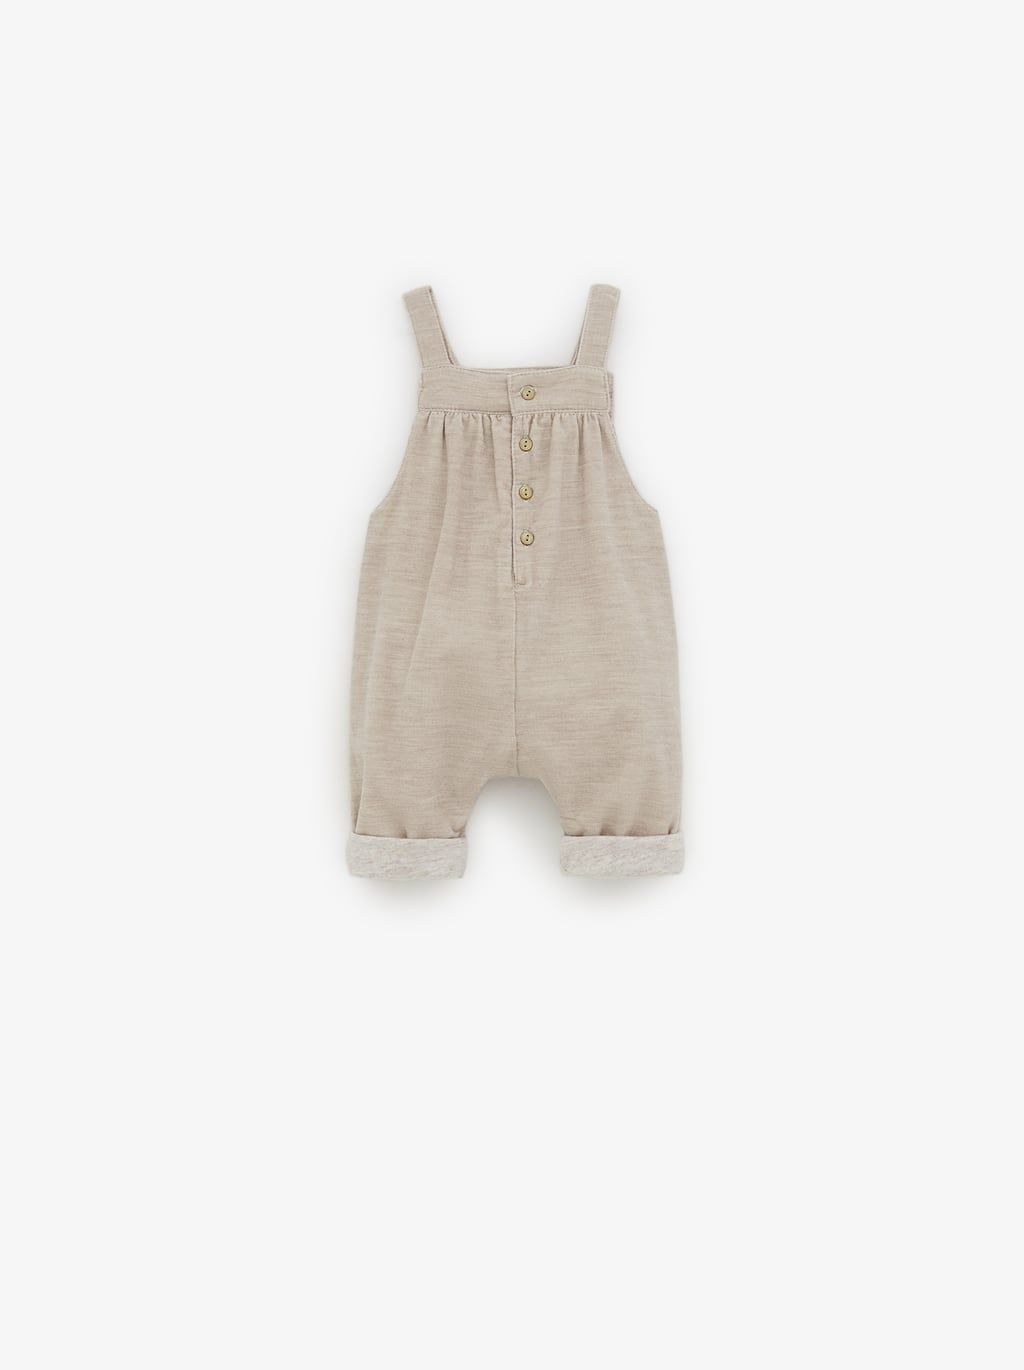 Fine waled corduroy overalls (With images) | Fashion ...